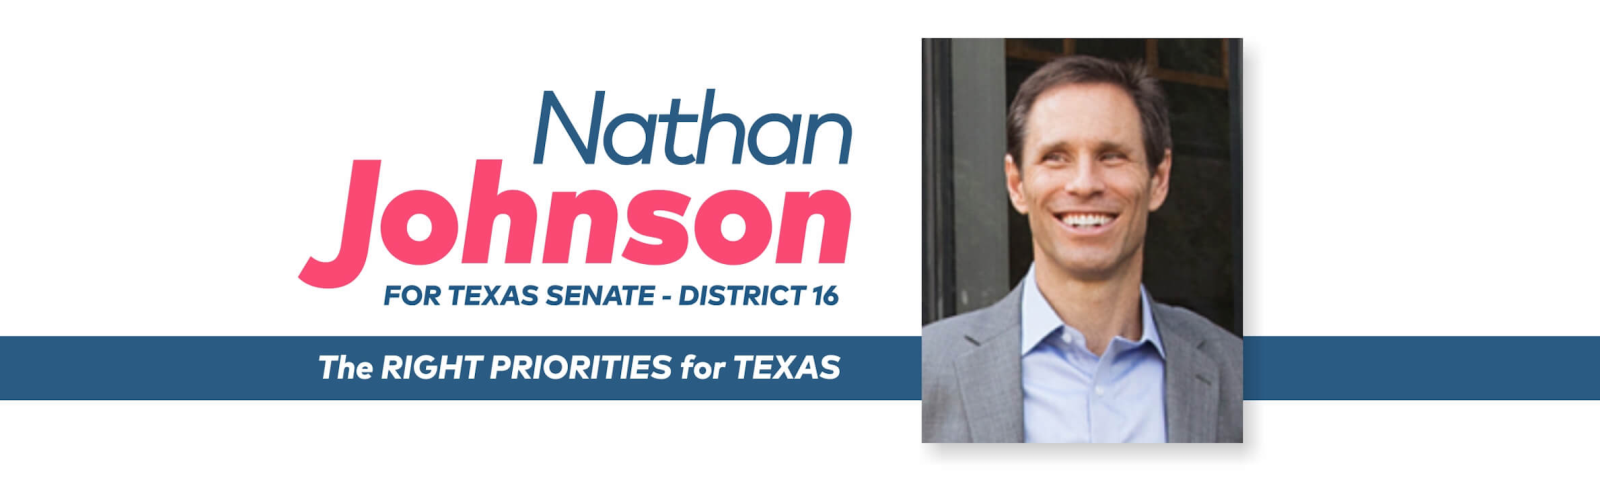 Nathan Johnson for Texas Senate 2018